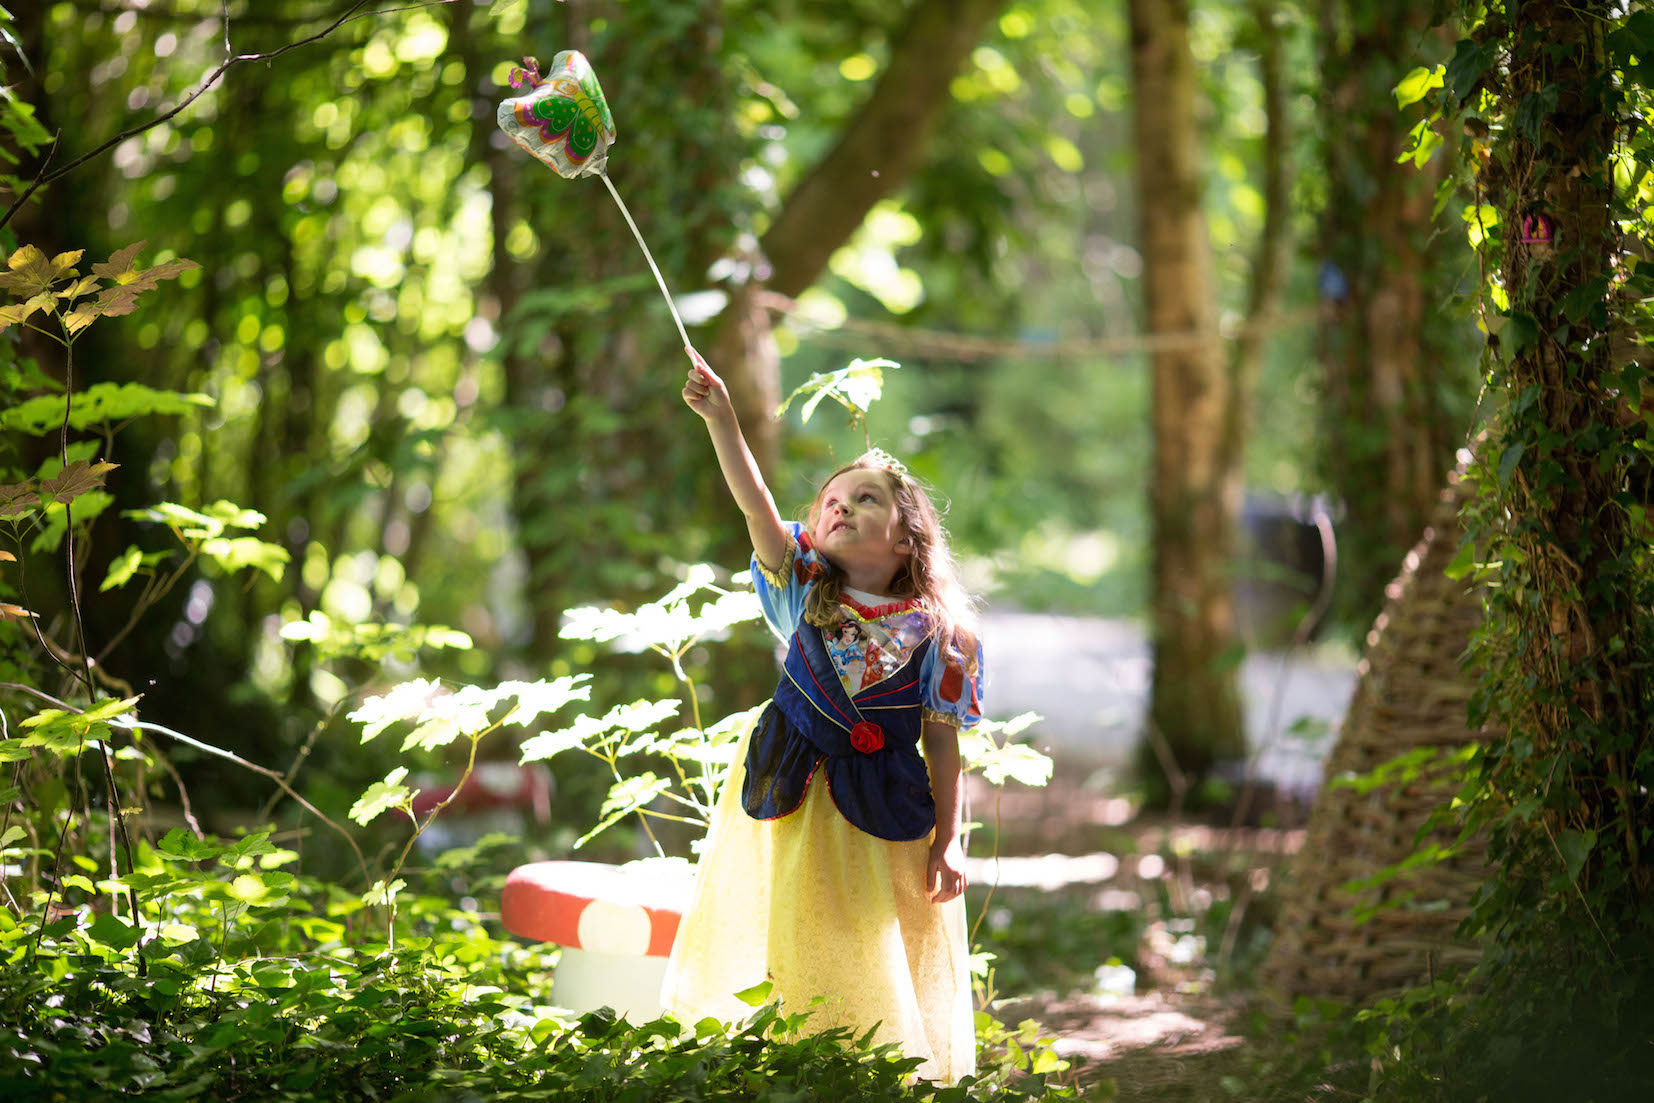 Bunratty Fairy Village opens with Mid Summer Festival